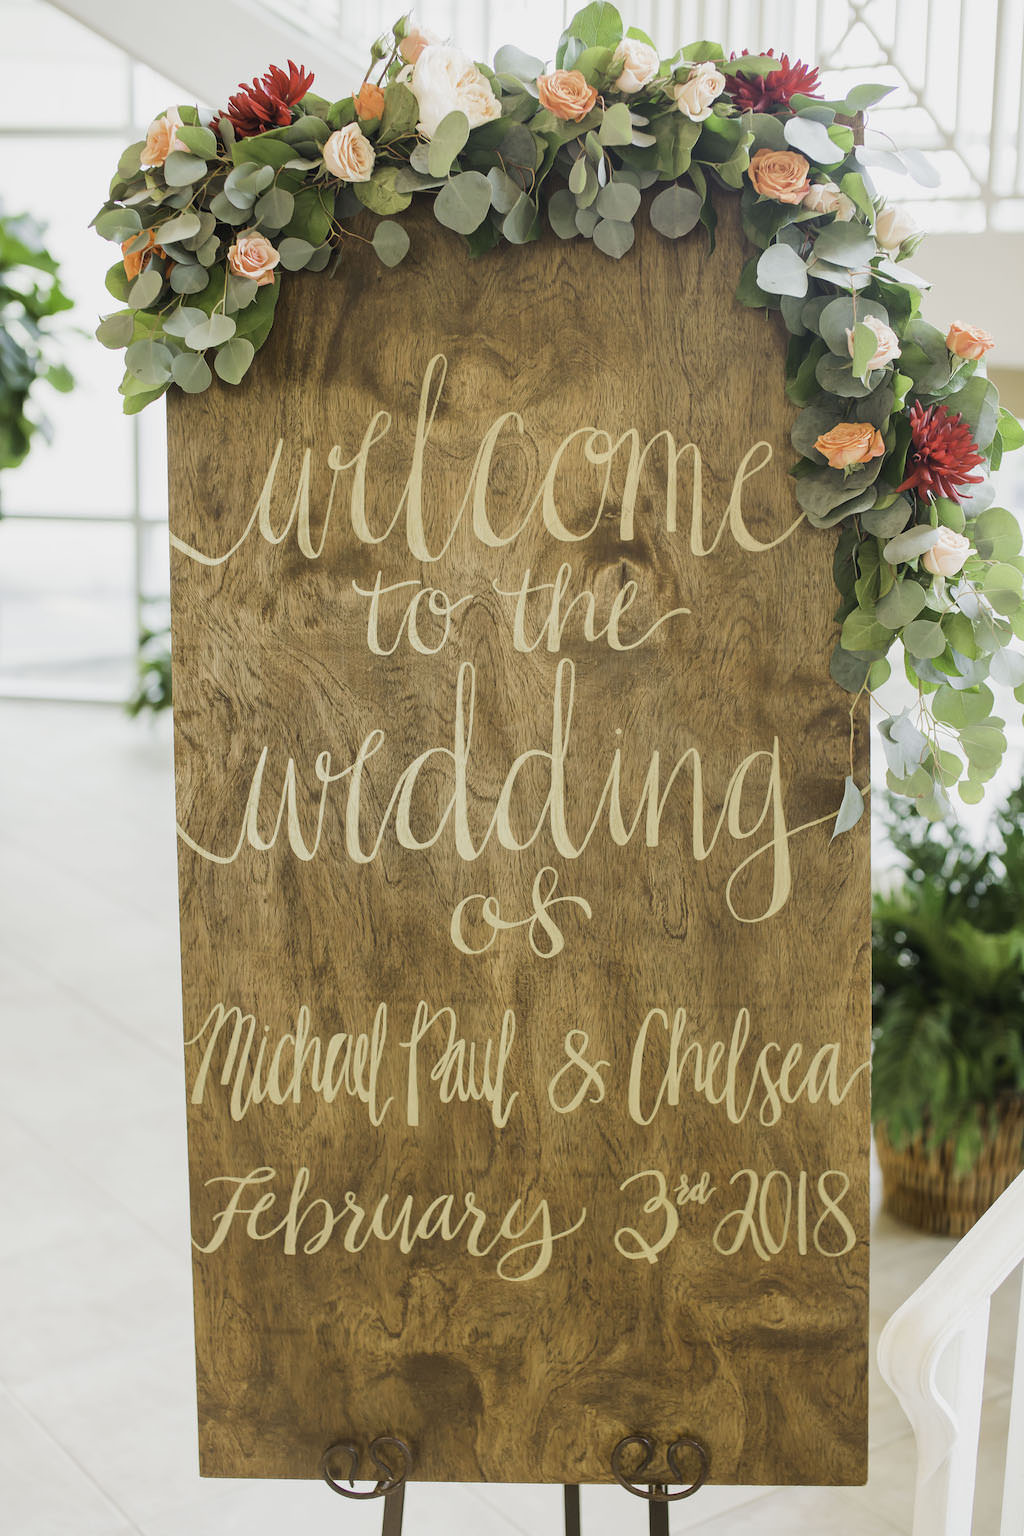 Rustic Wooden Wedding Welcome Sign with Greenery Blush Pink, Orange and Red Floral Decor